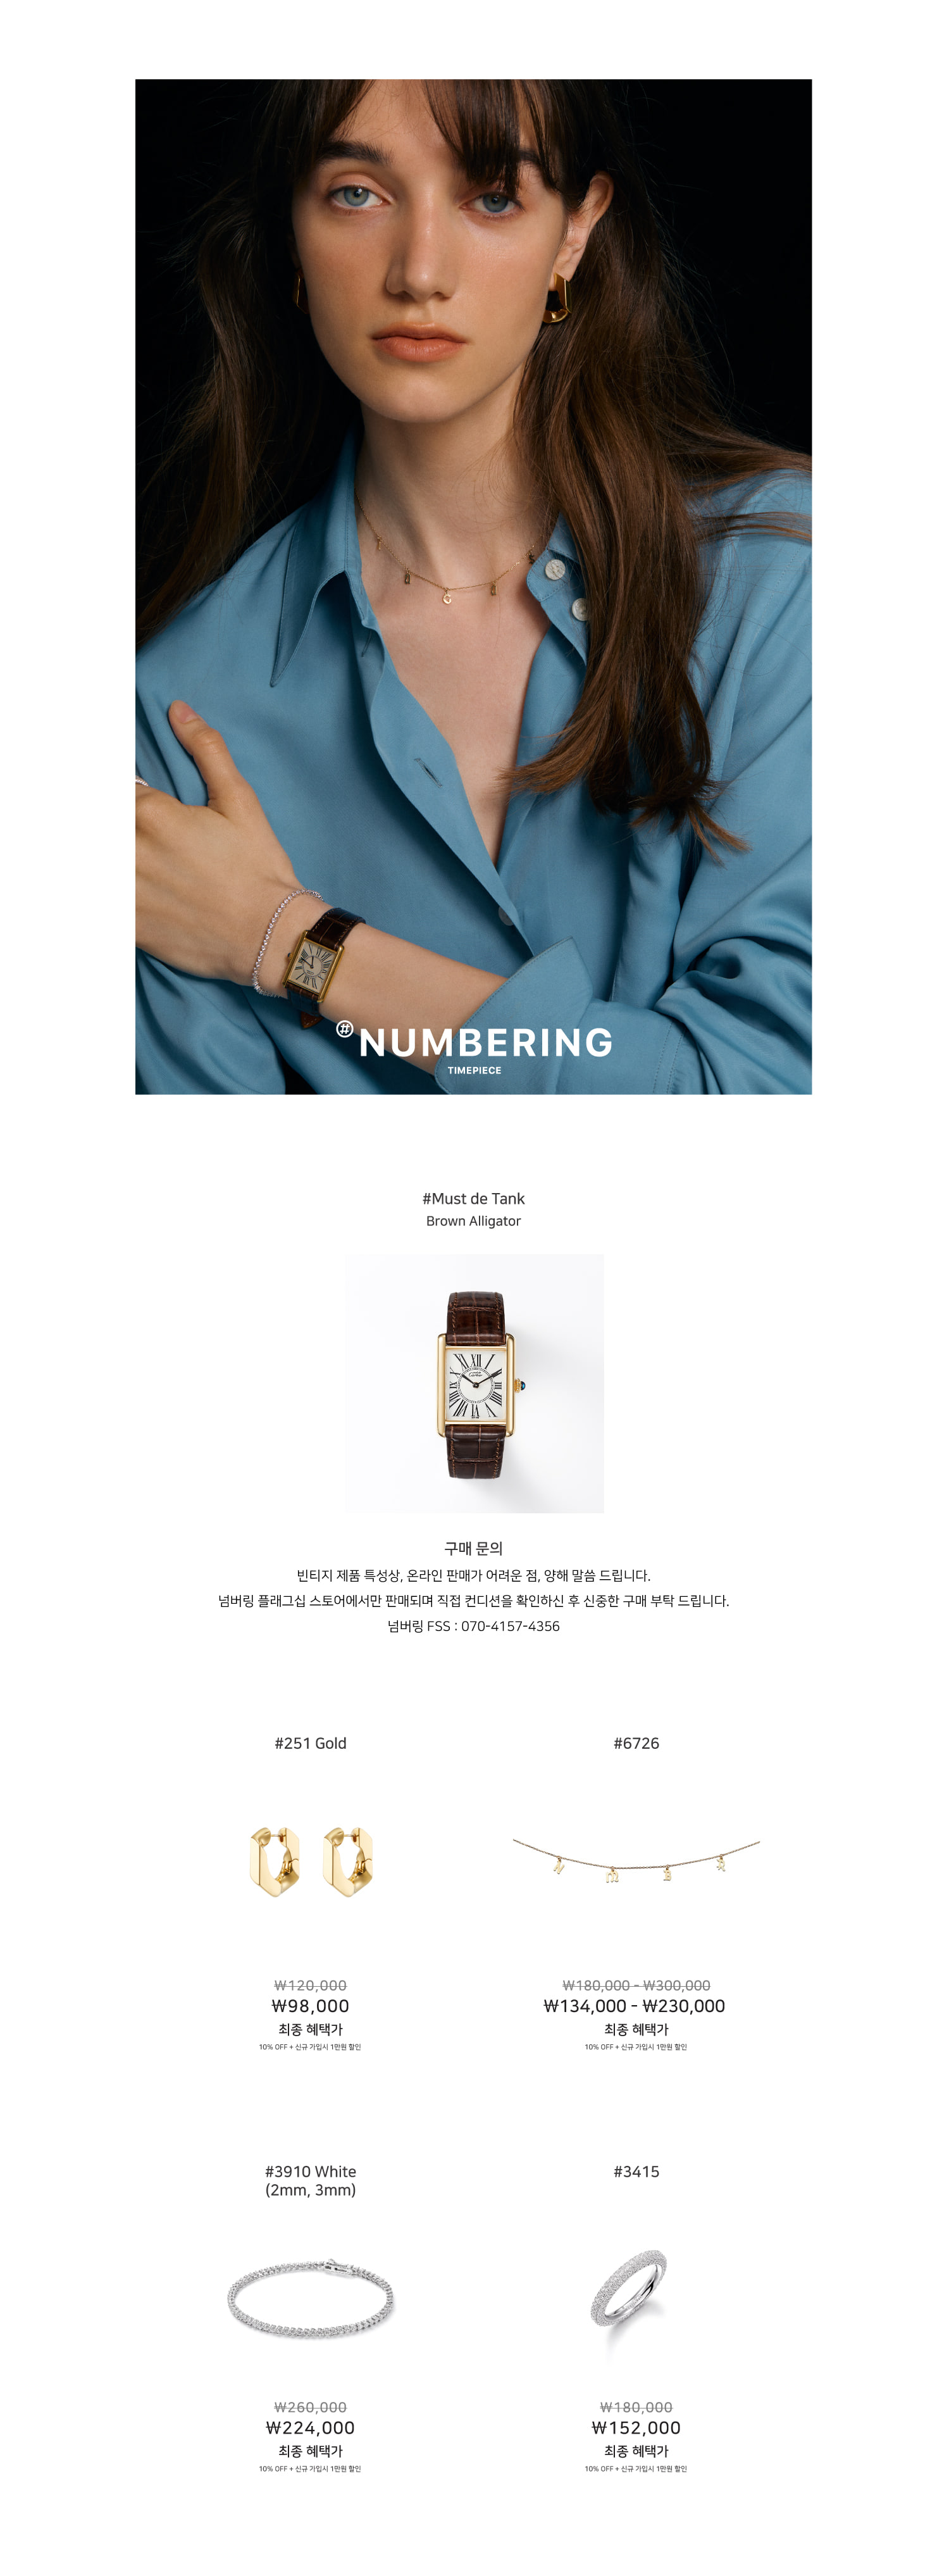 NMBR timepiece launch 6726